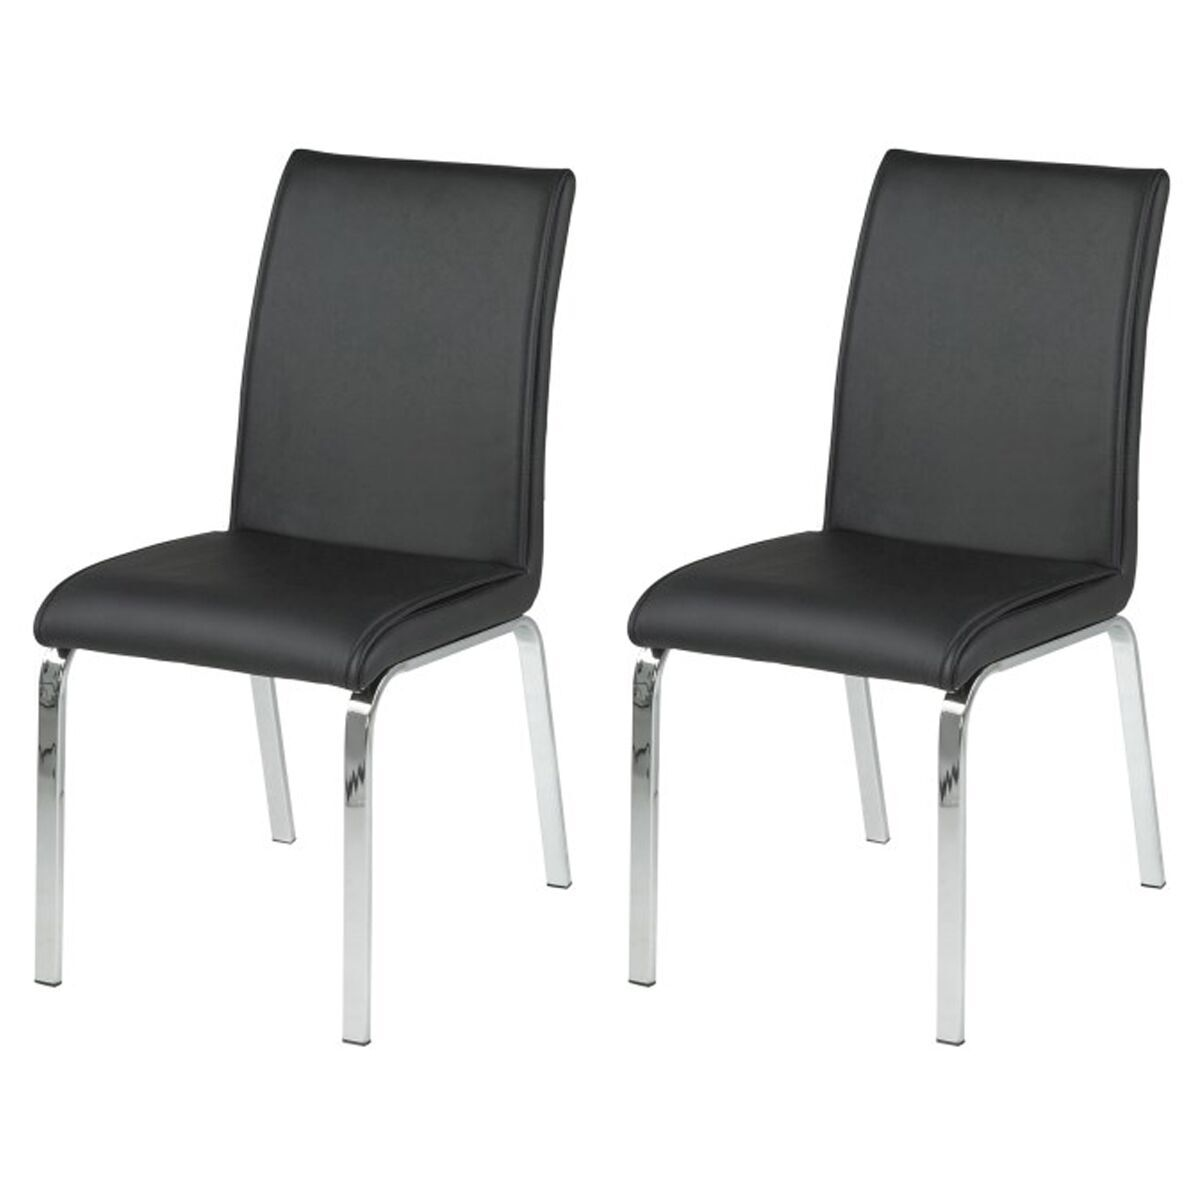 Black Leather Dining Chairs Leonora Black Faux Leather Dining Chairs Dining Chairs